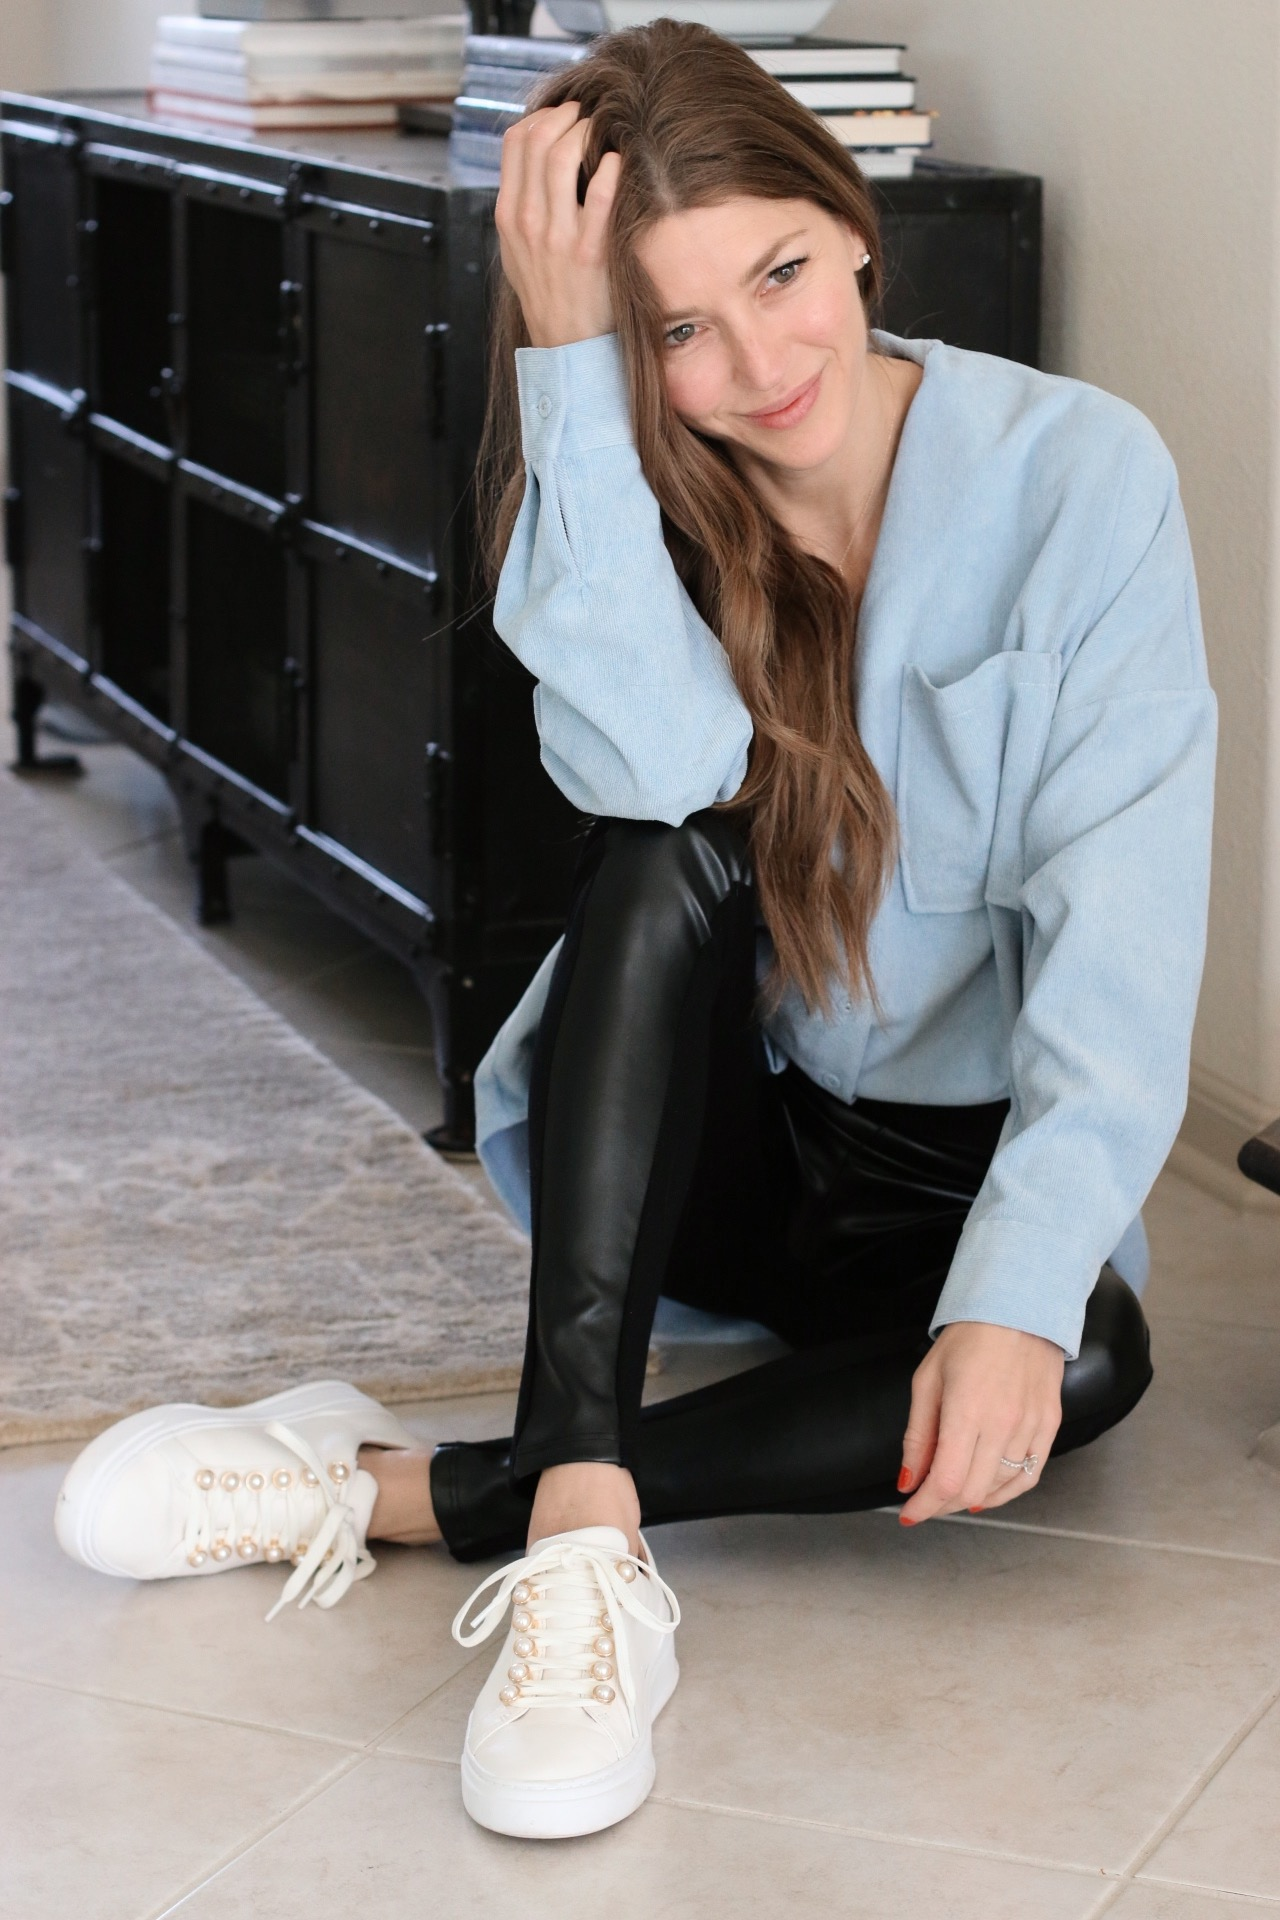 Blue top, leather pants, white sneakers